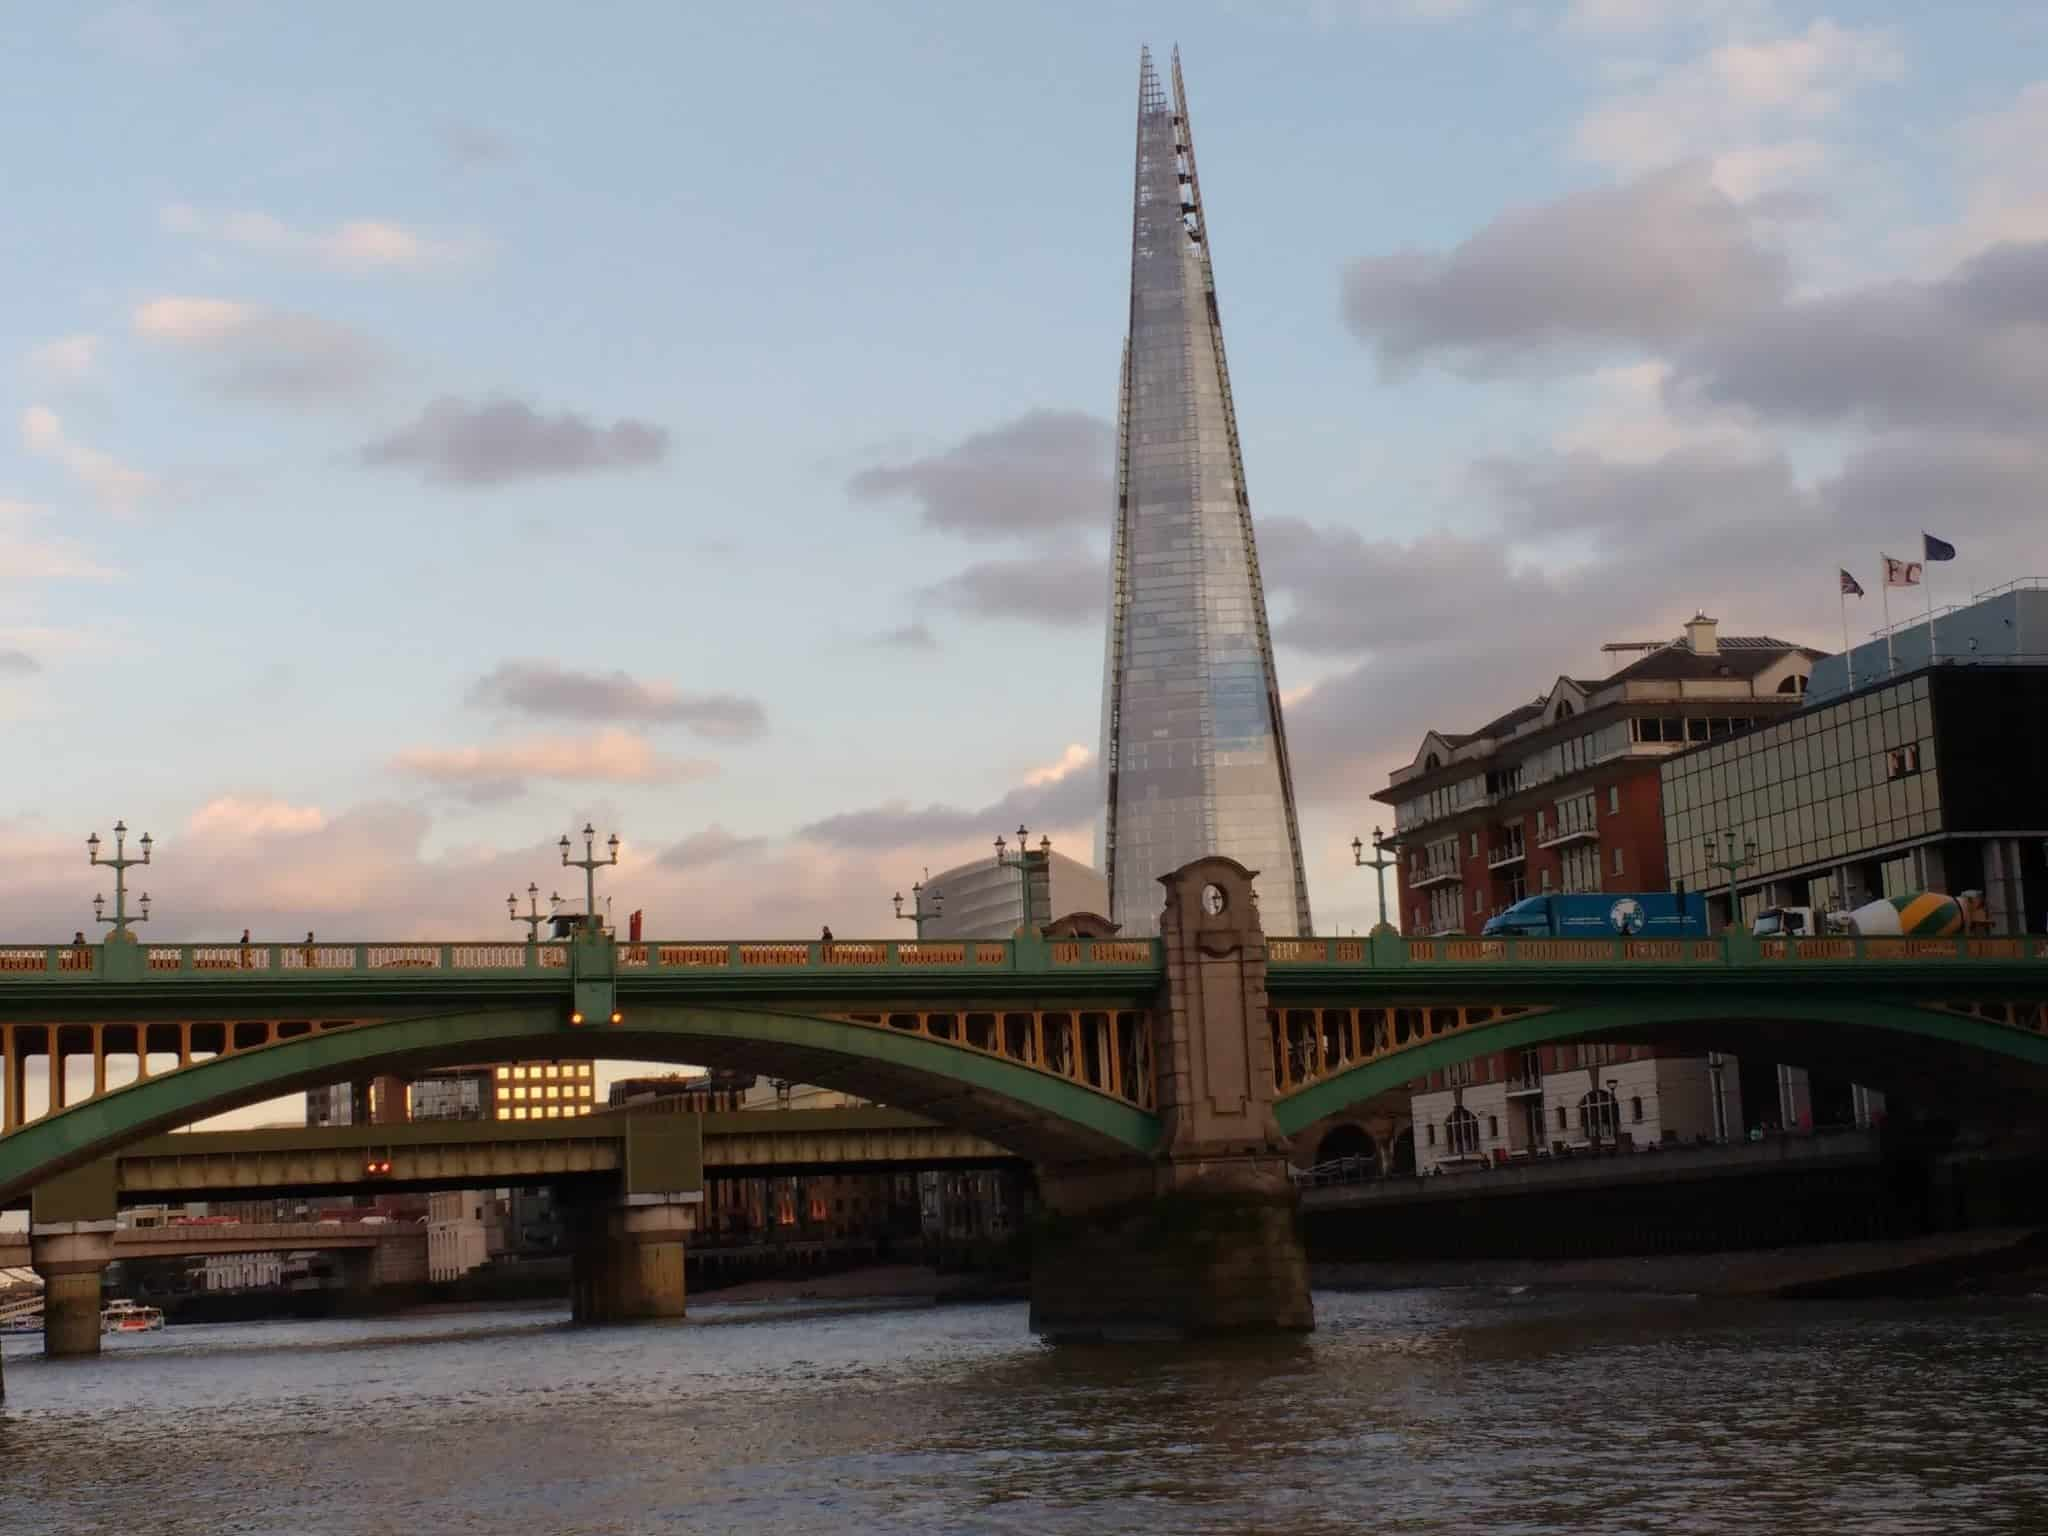 view of the shard from the River Thames